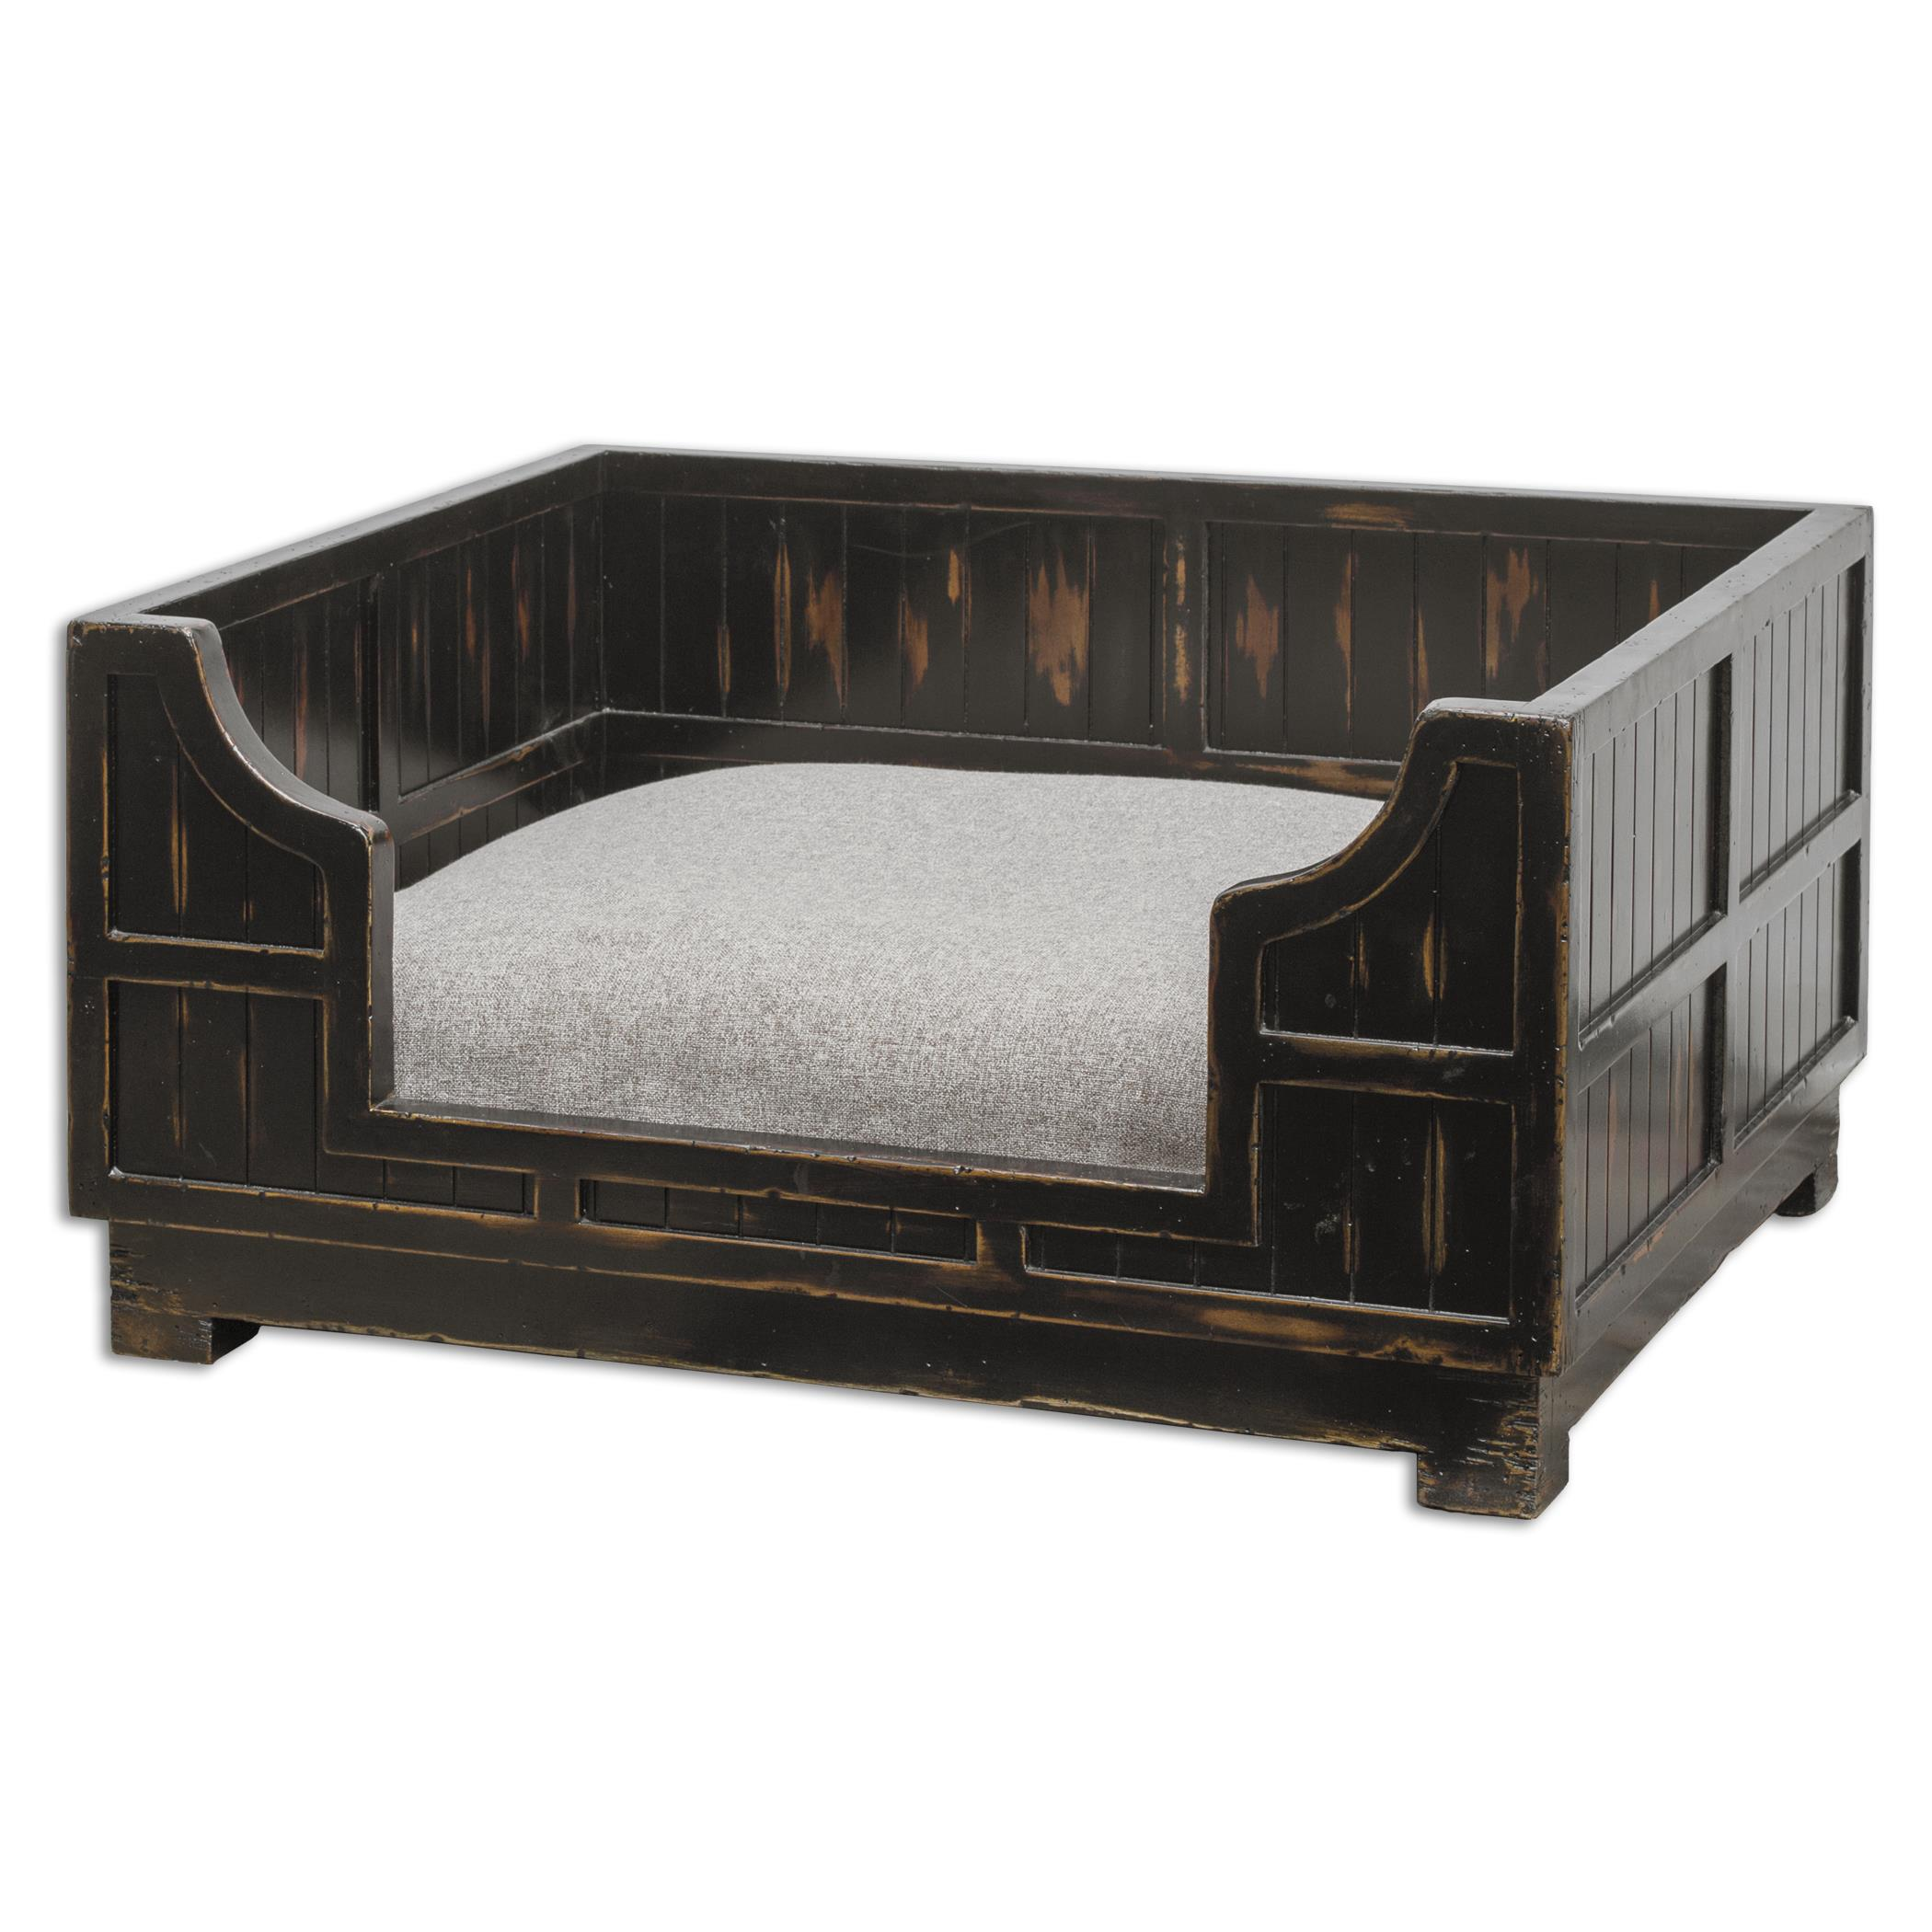 Uttermost Accent Furniture Dezi Wooden Crate Pet Bed - Item Number: 23624